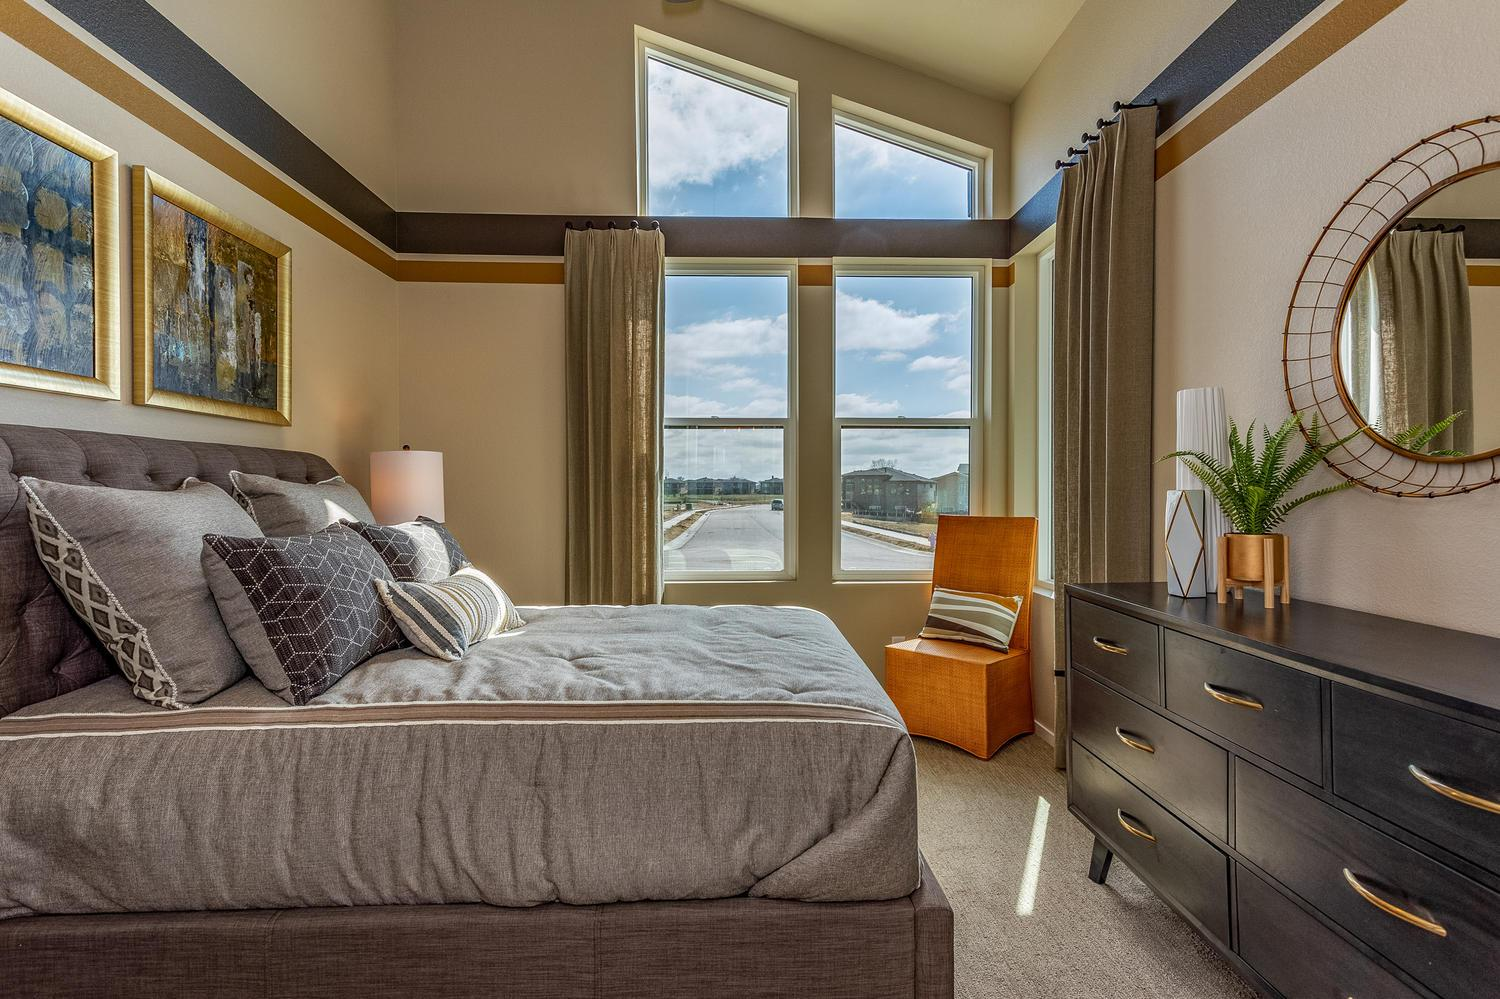 Bedroom featured in the Buckhorn By Hartford Homes in Fort Collins-Loveland, CO